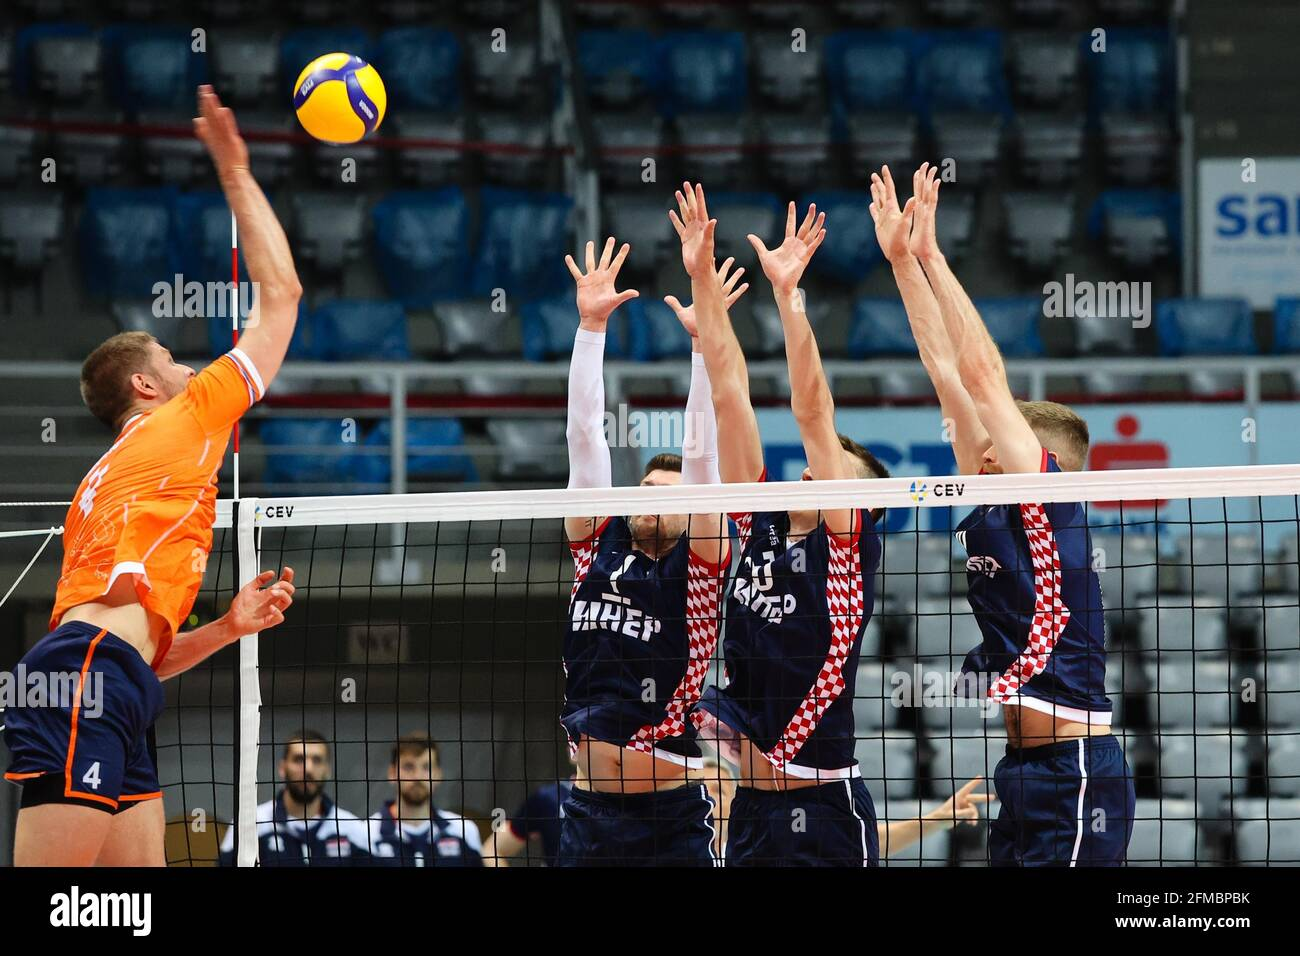 (210508) -- ZADAR, May 8, 2021 (Xinhua) -- Thijs Ter Host (1st L) of the Netherlands spikes during the CEV EuroVolley 2021 Qualifying match between Croatia and the Netherlands in Zadar, Croatia, May 7, 2021. (Marko Dimic/Pixsell via Xinhua) Stock Photo